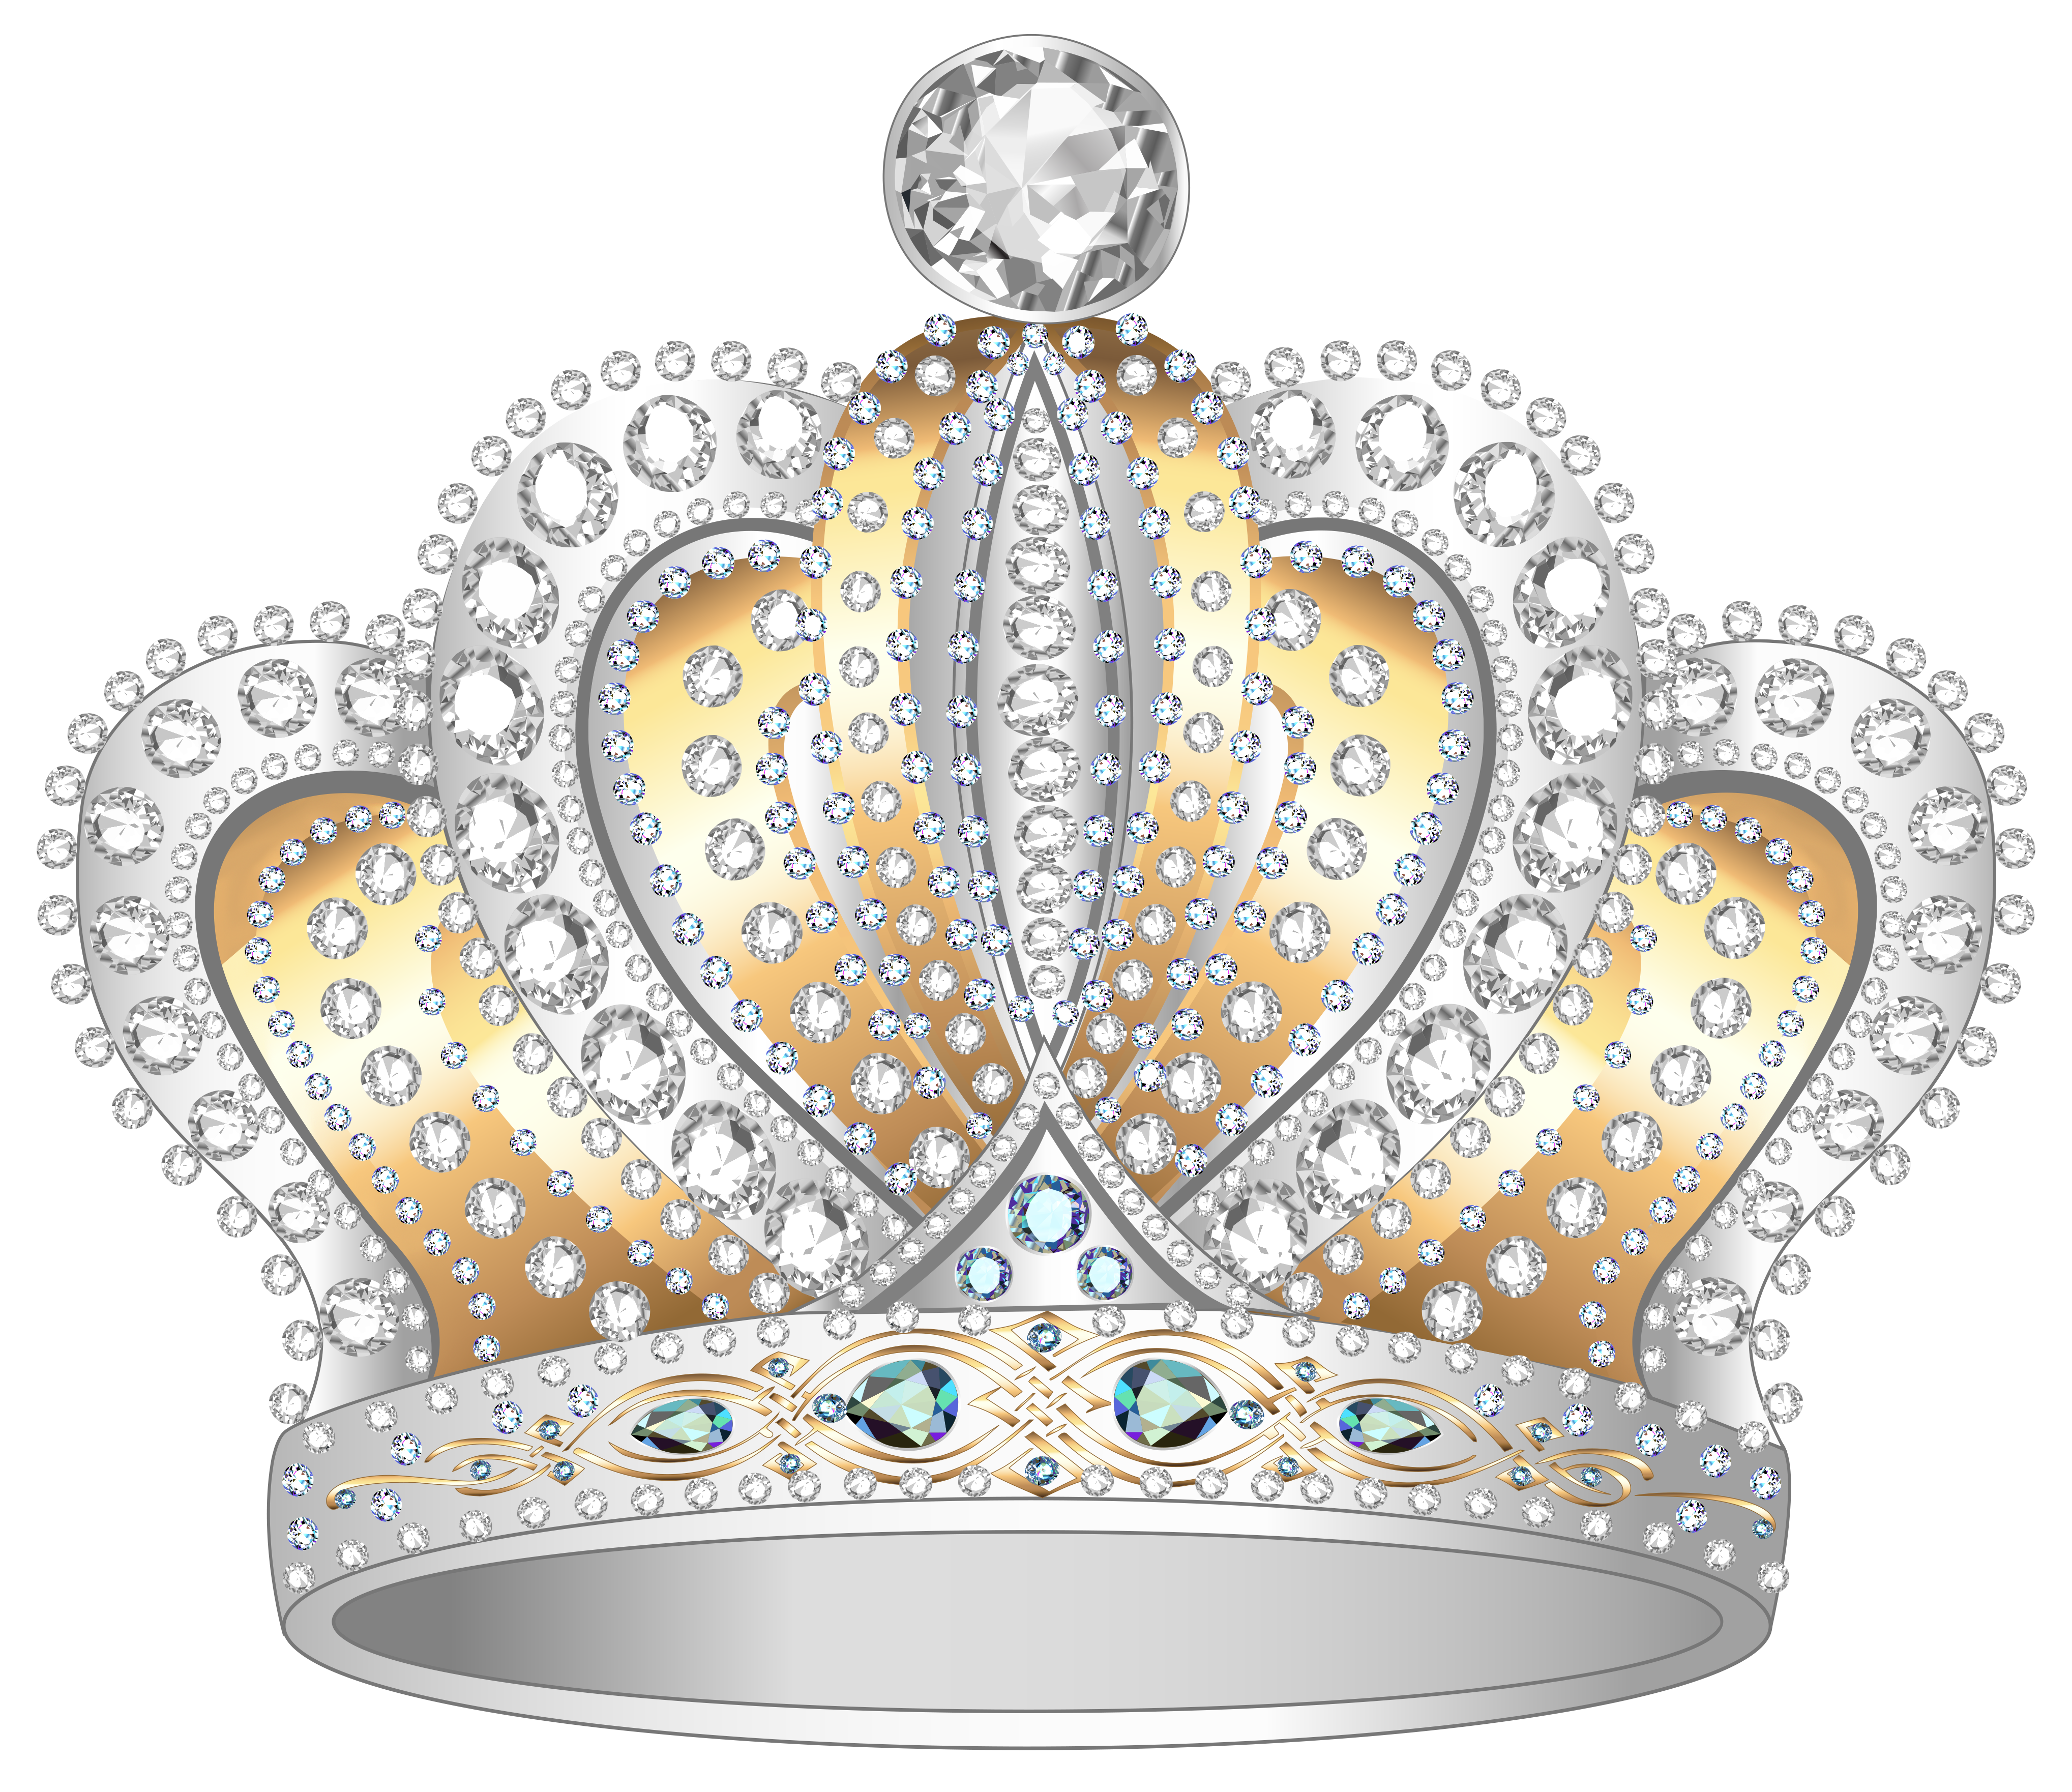 3d silver diamond clipart png vector library library Crown Diamond Clip art - Silver Gold Diamond Crown PNG Clipart Image ... vector library library